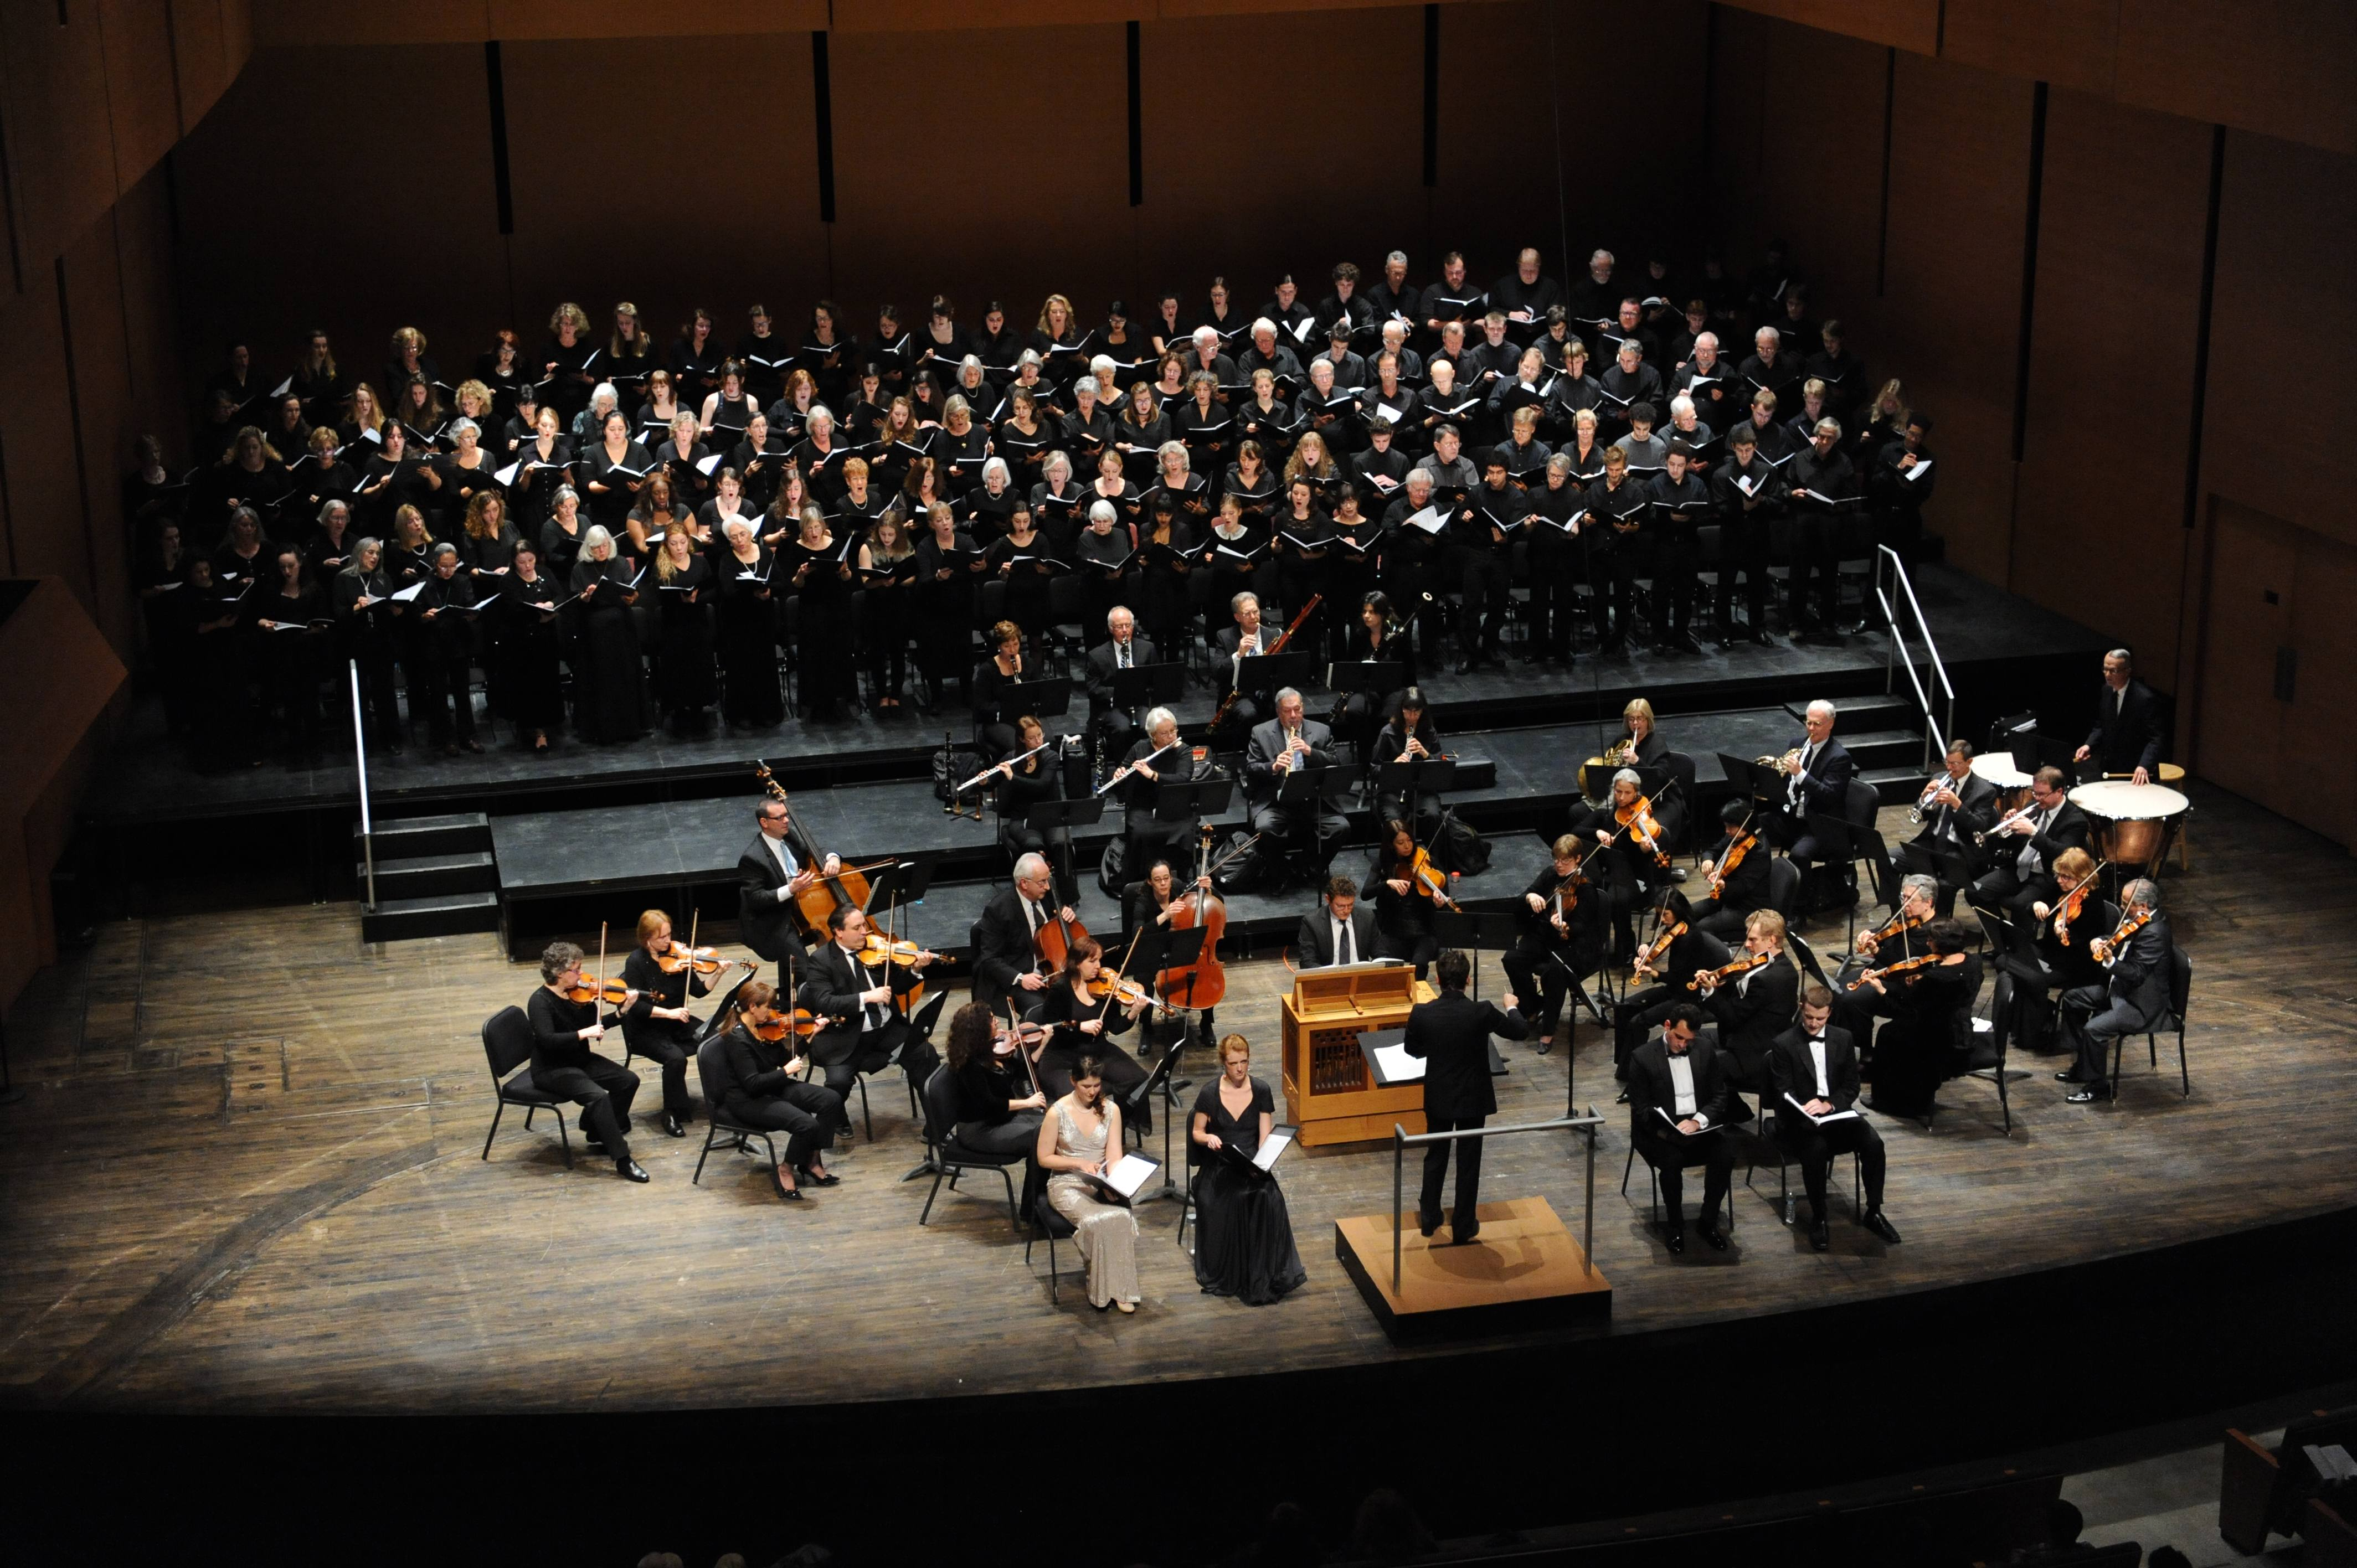 [Bard College Chamber Singers and Symphonic Chorus]